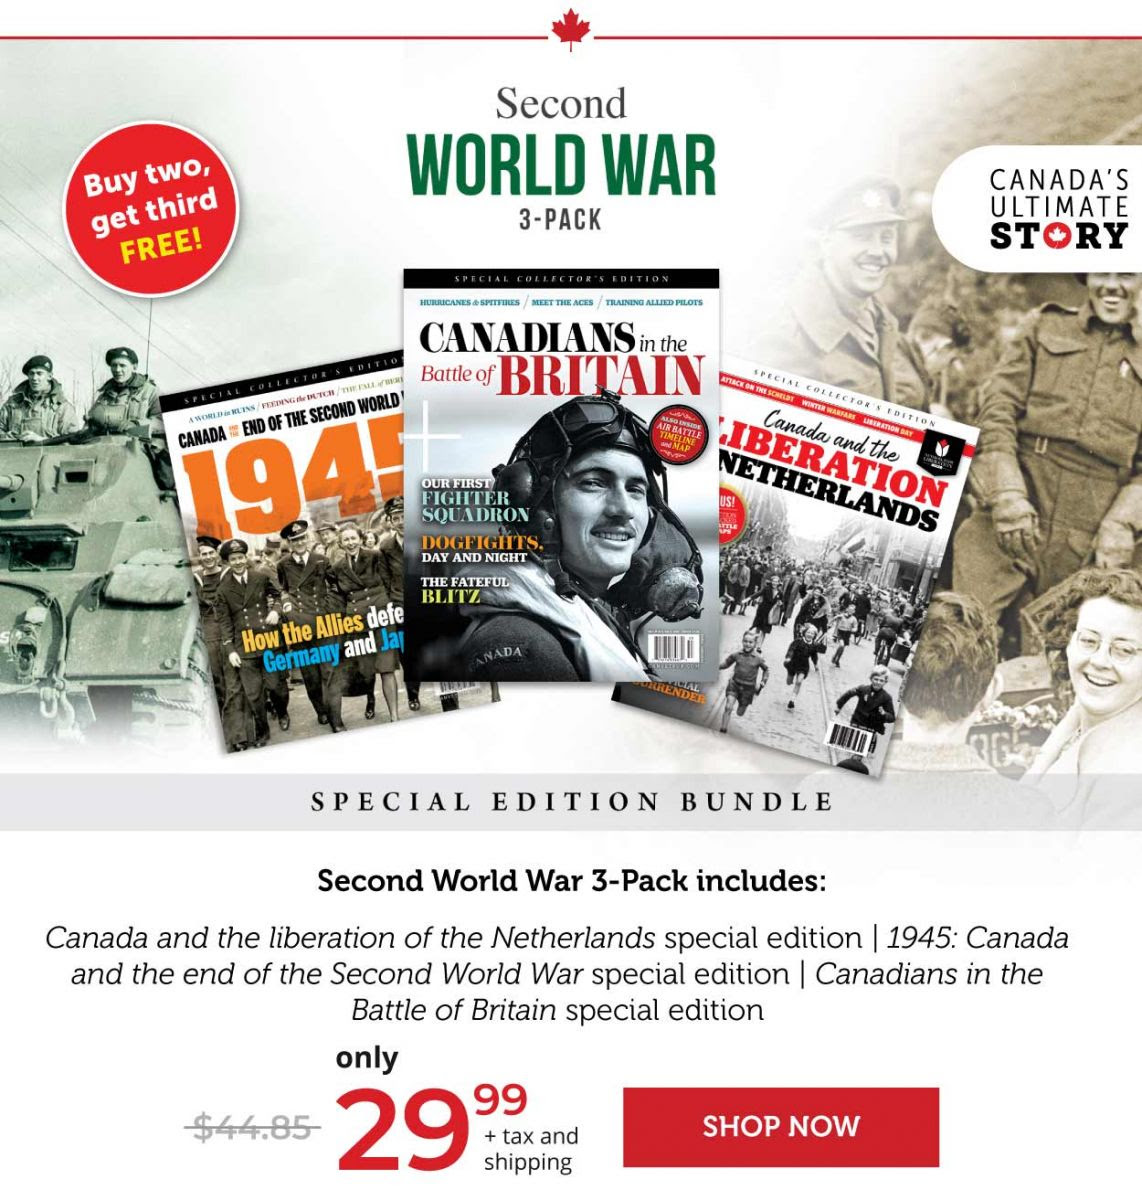 Second World War 3-pack – Buy two, get third FREE!